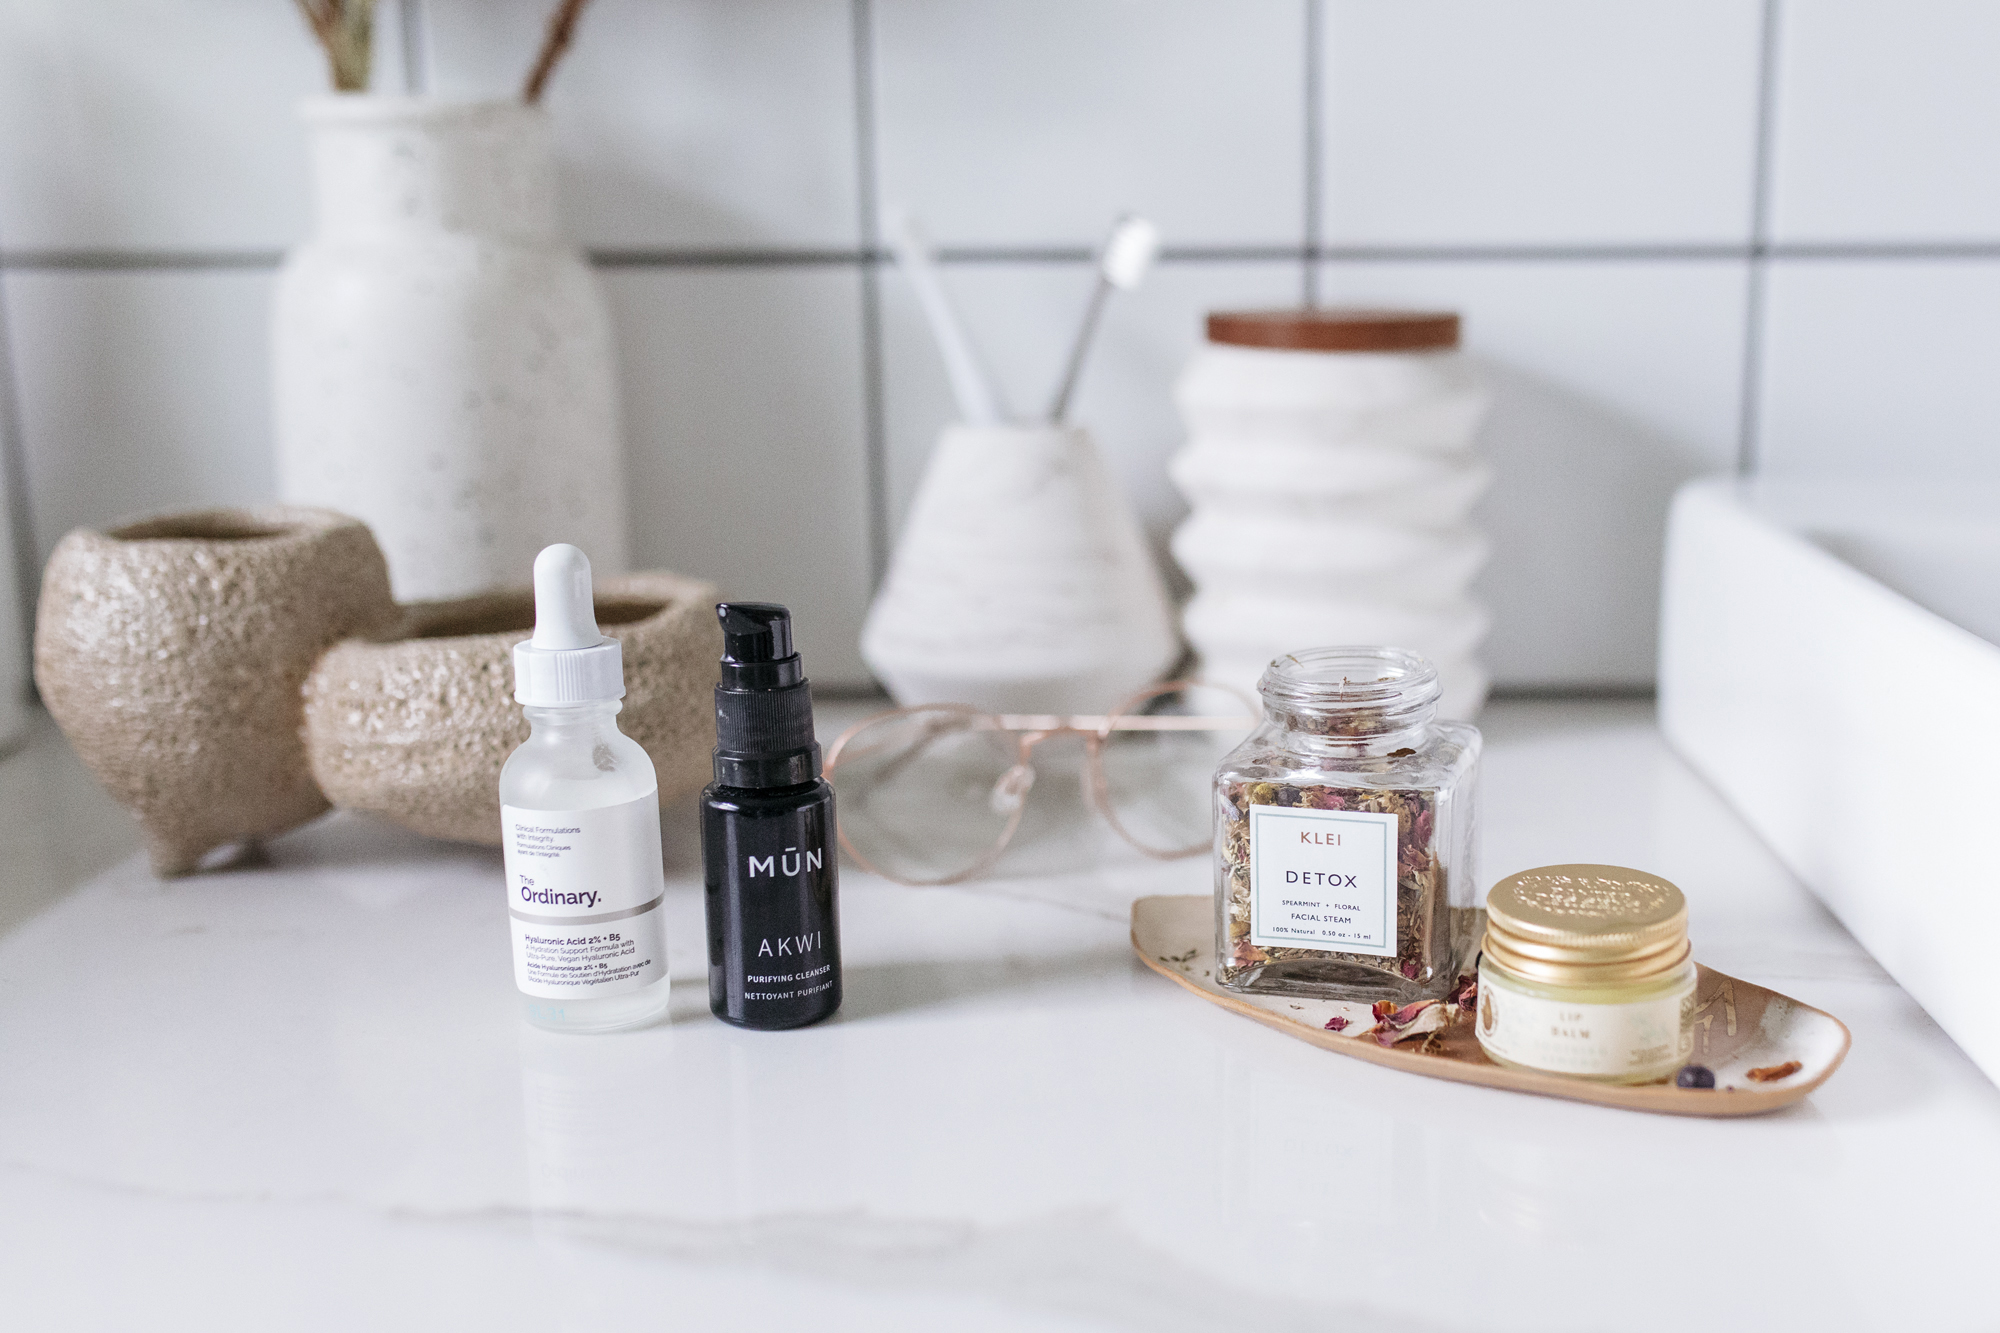 Get Unready with me! Creative blogger Emily r. Hess takes us behind the scenes of her night time skin care ritual